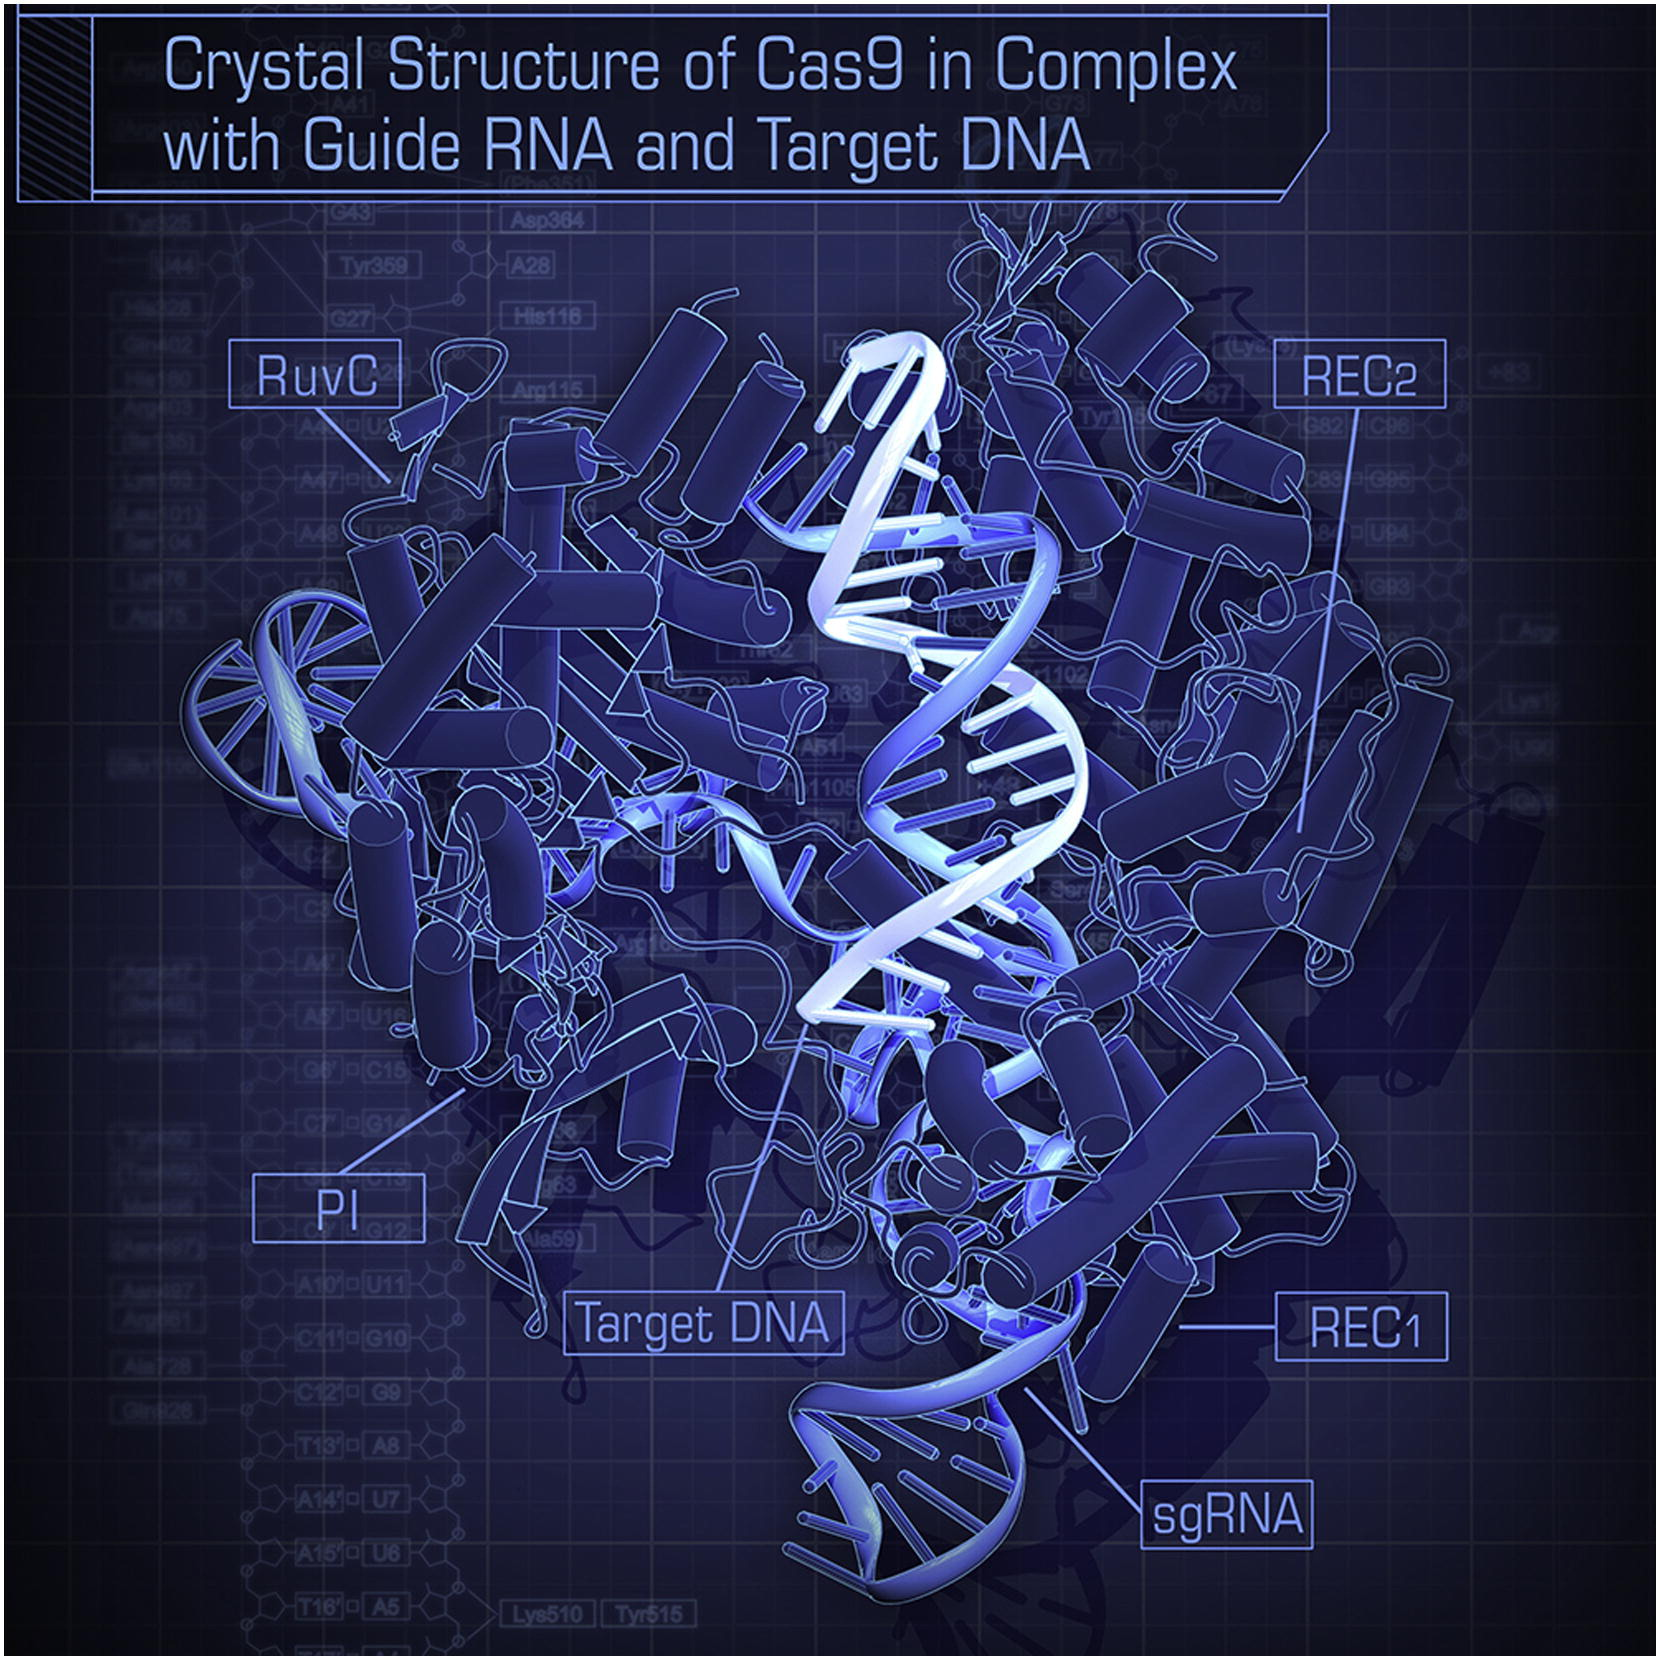 Crystal structure of Cas9 in complex with guide RNA and target DNA.